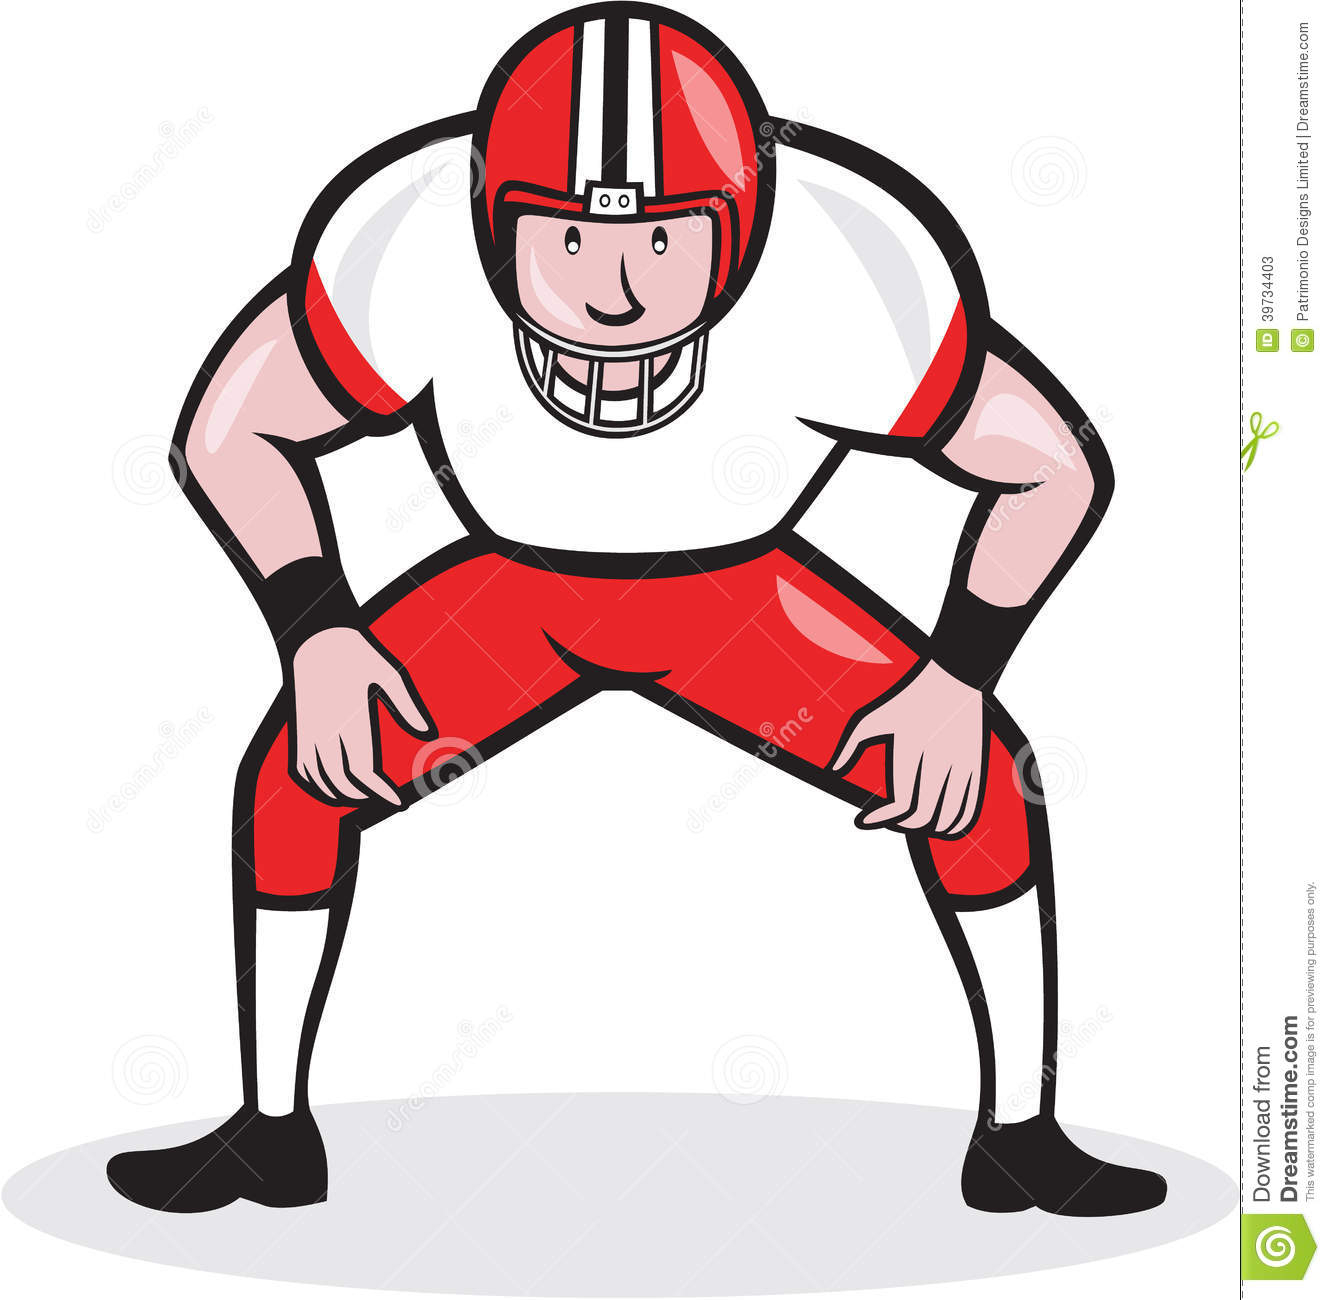 football player clipart at getdrawings com free for personal use